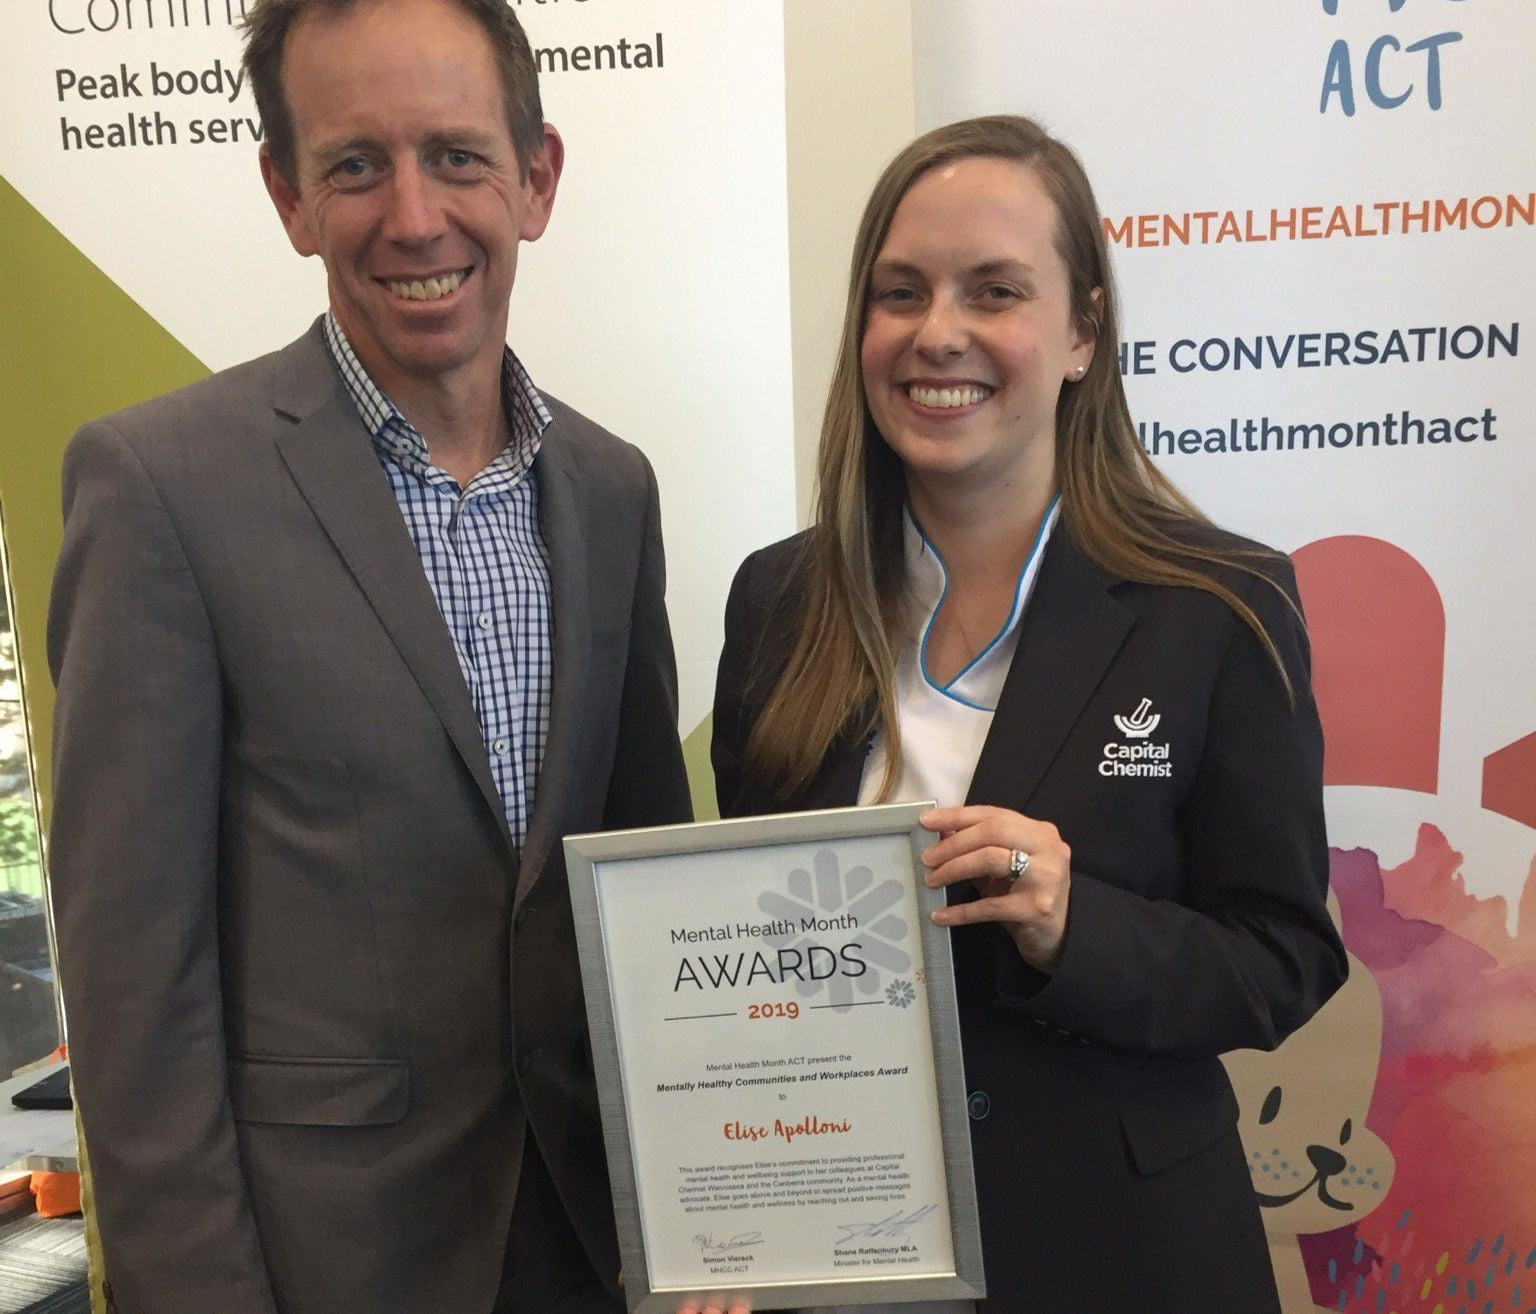 Shane Rattenbury presents Elise Apolloni with her ACT Mental Health Award.